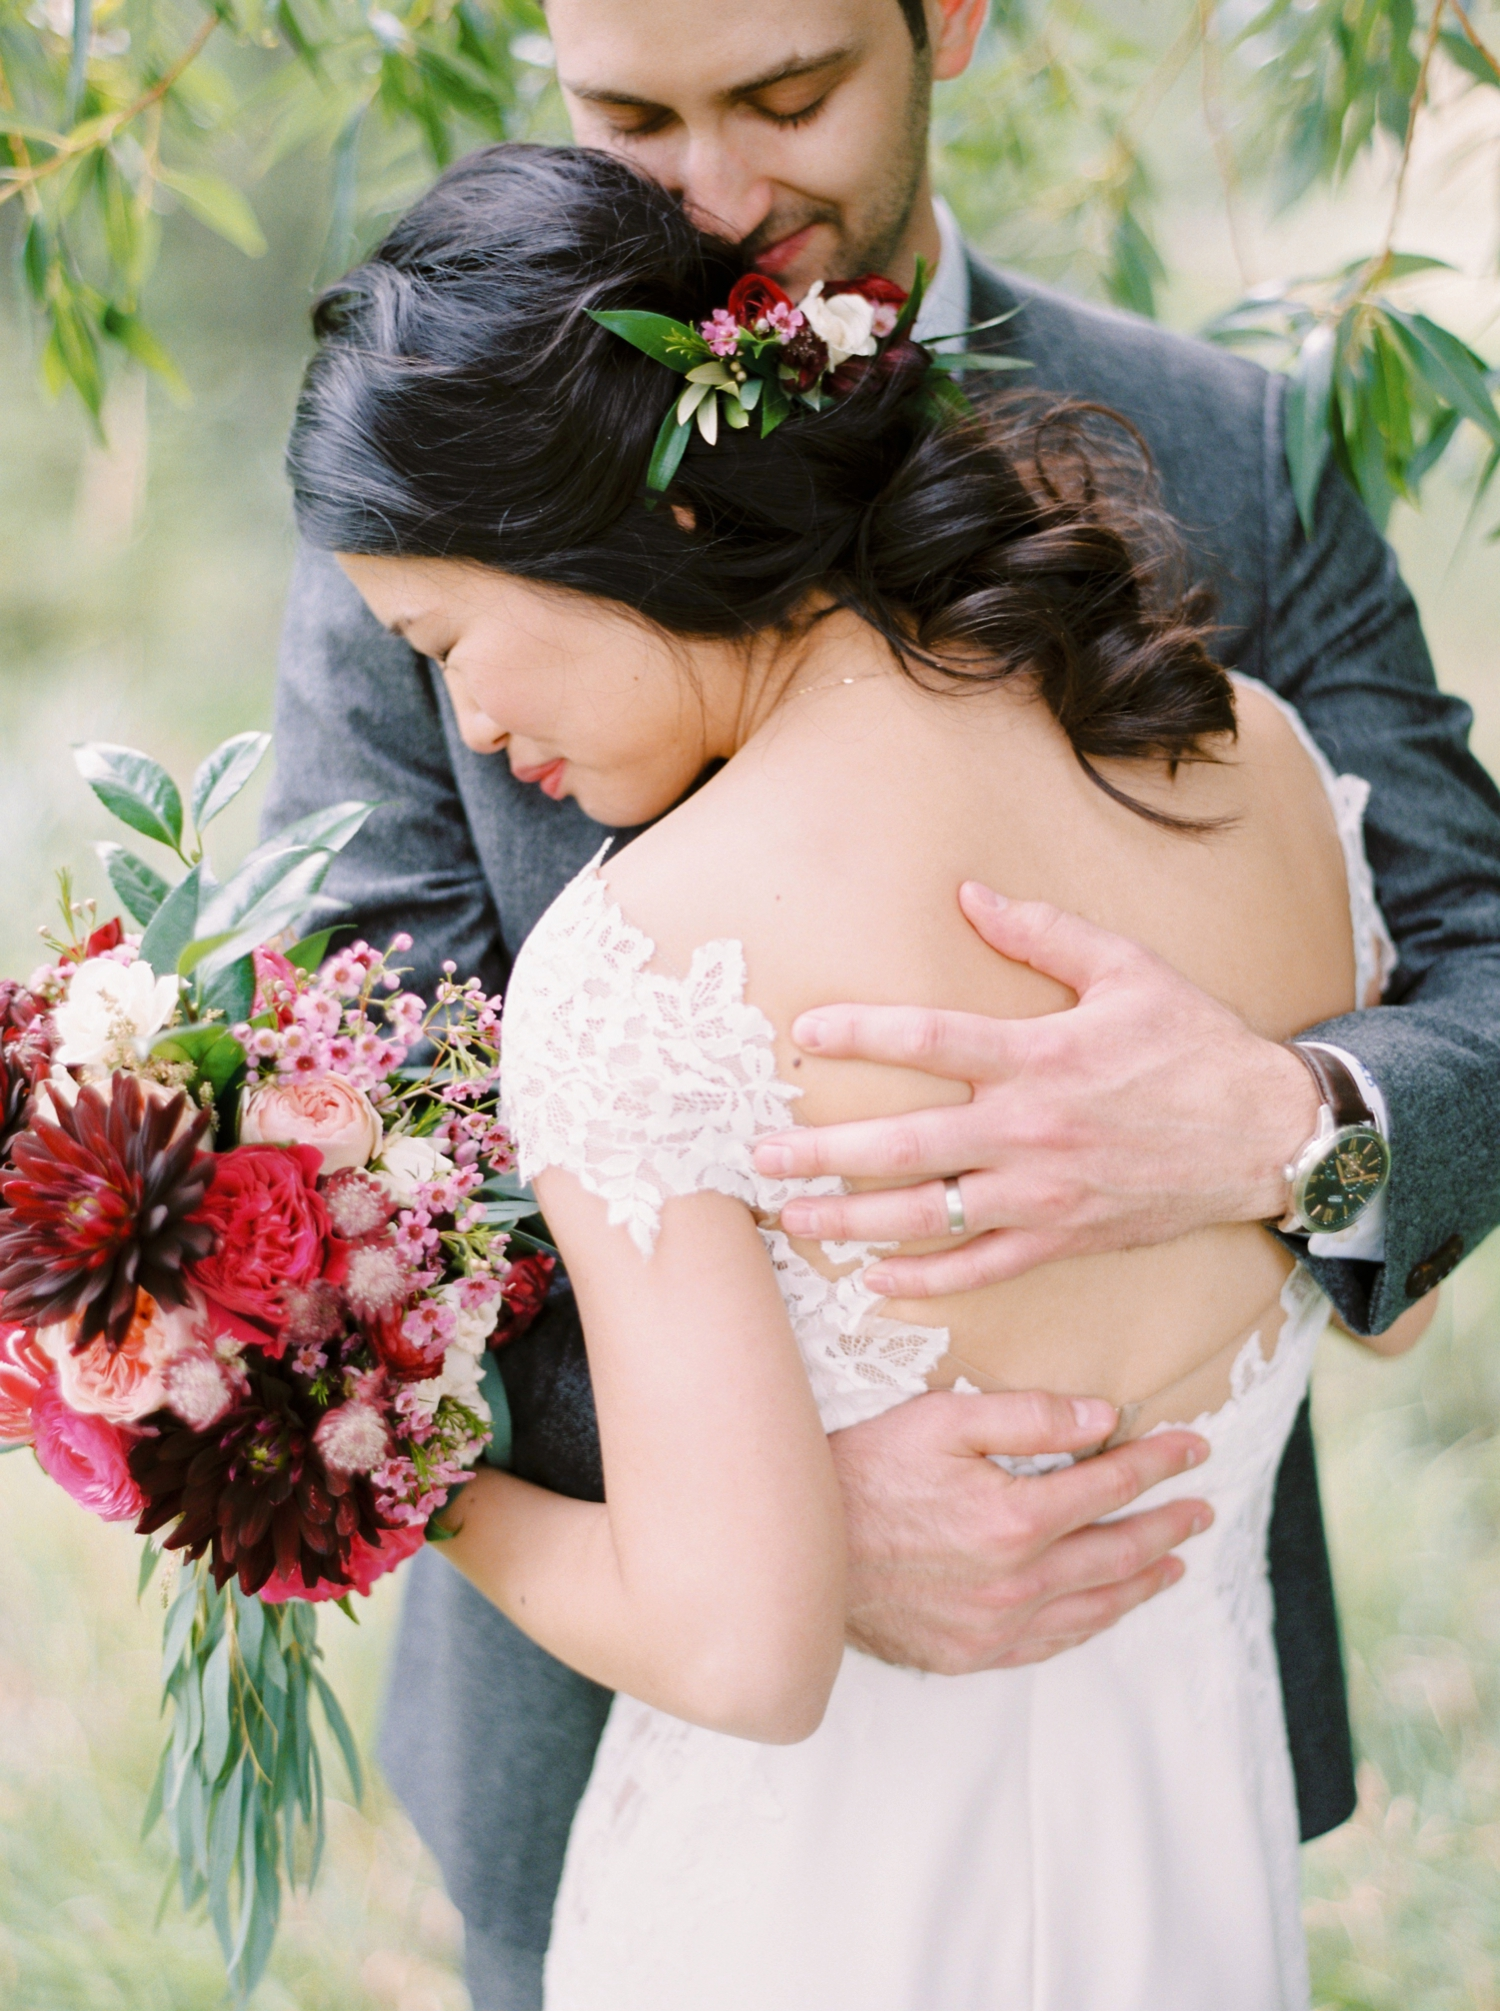 Calgary wedding photographer | fine art film photography | Calgary Wedding Photographers | Justine Milton Photography | workshop wedding | bride hairstyle | bouquet